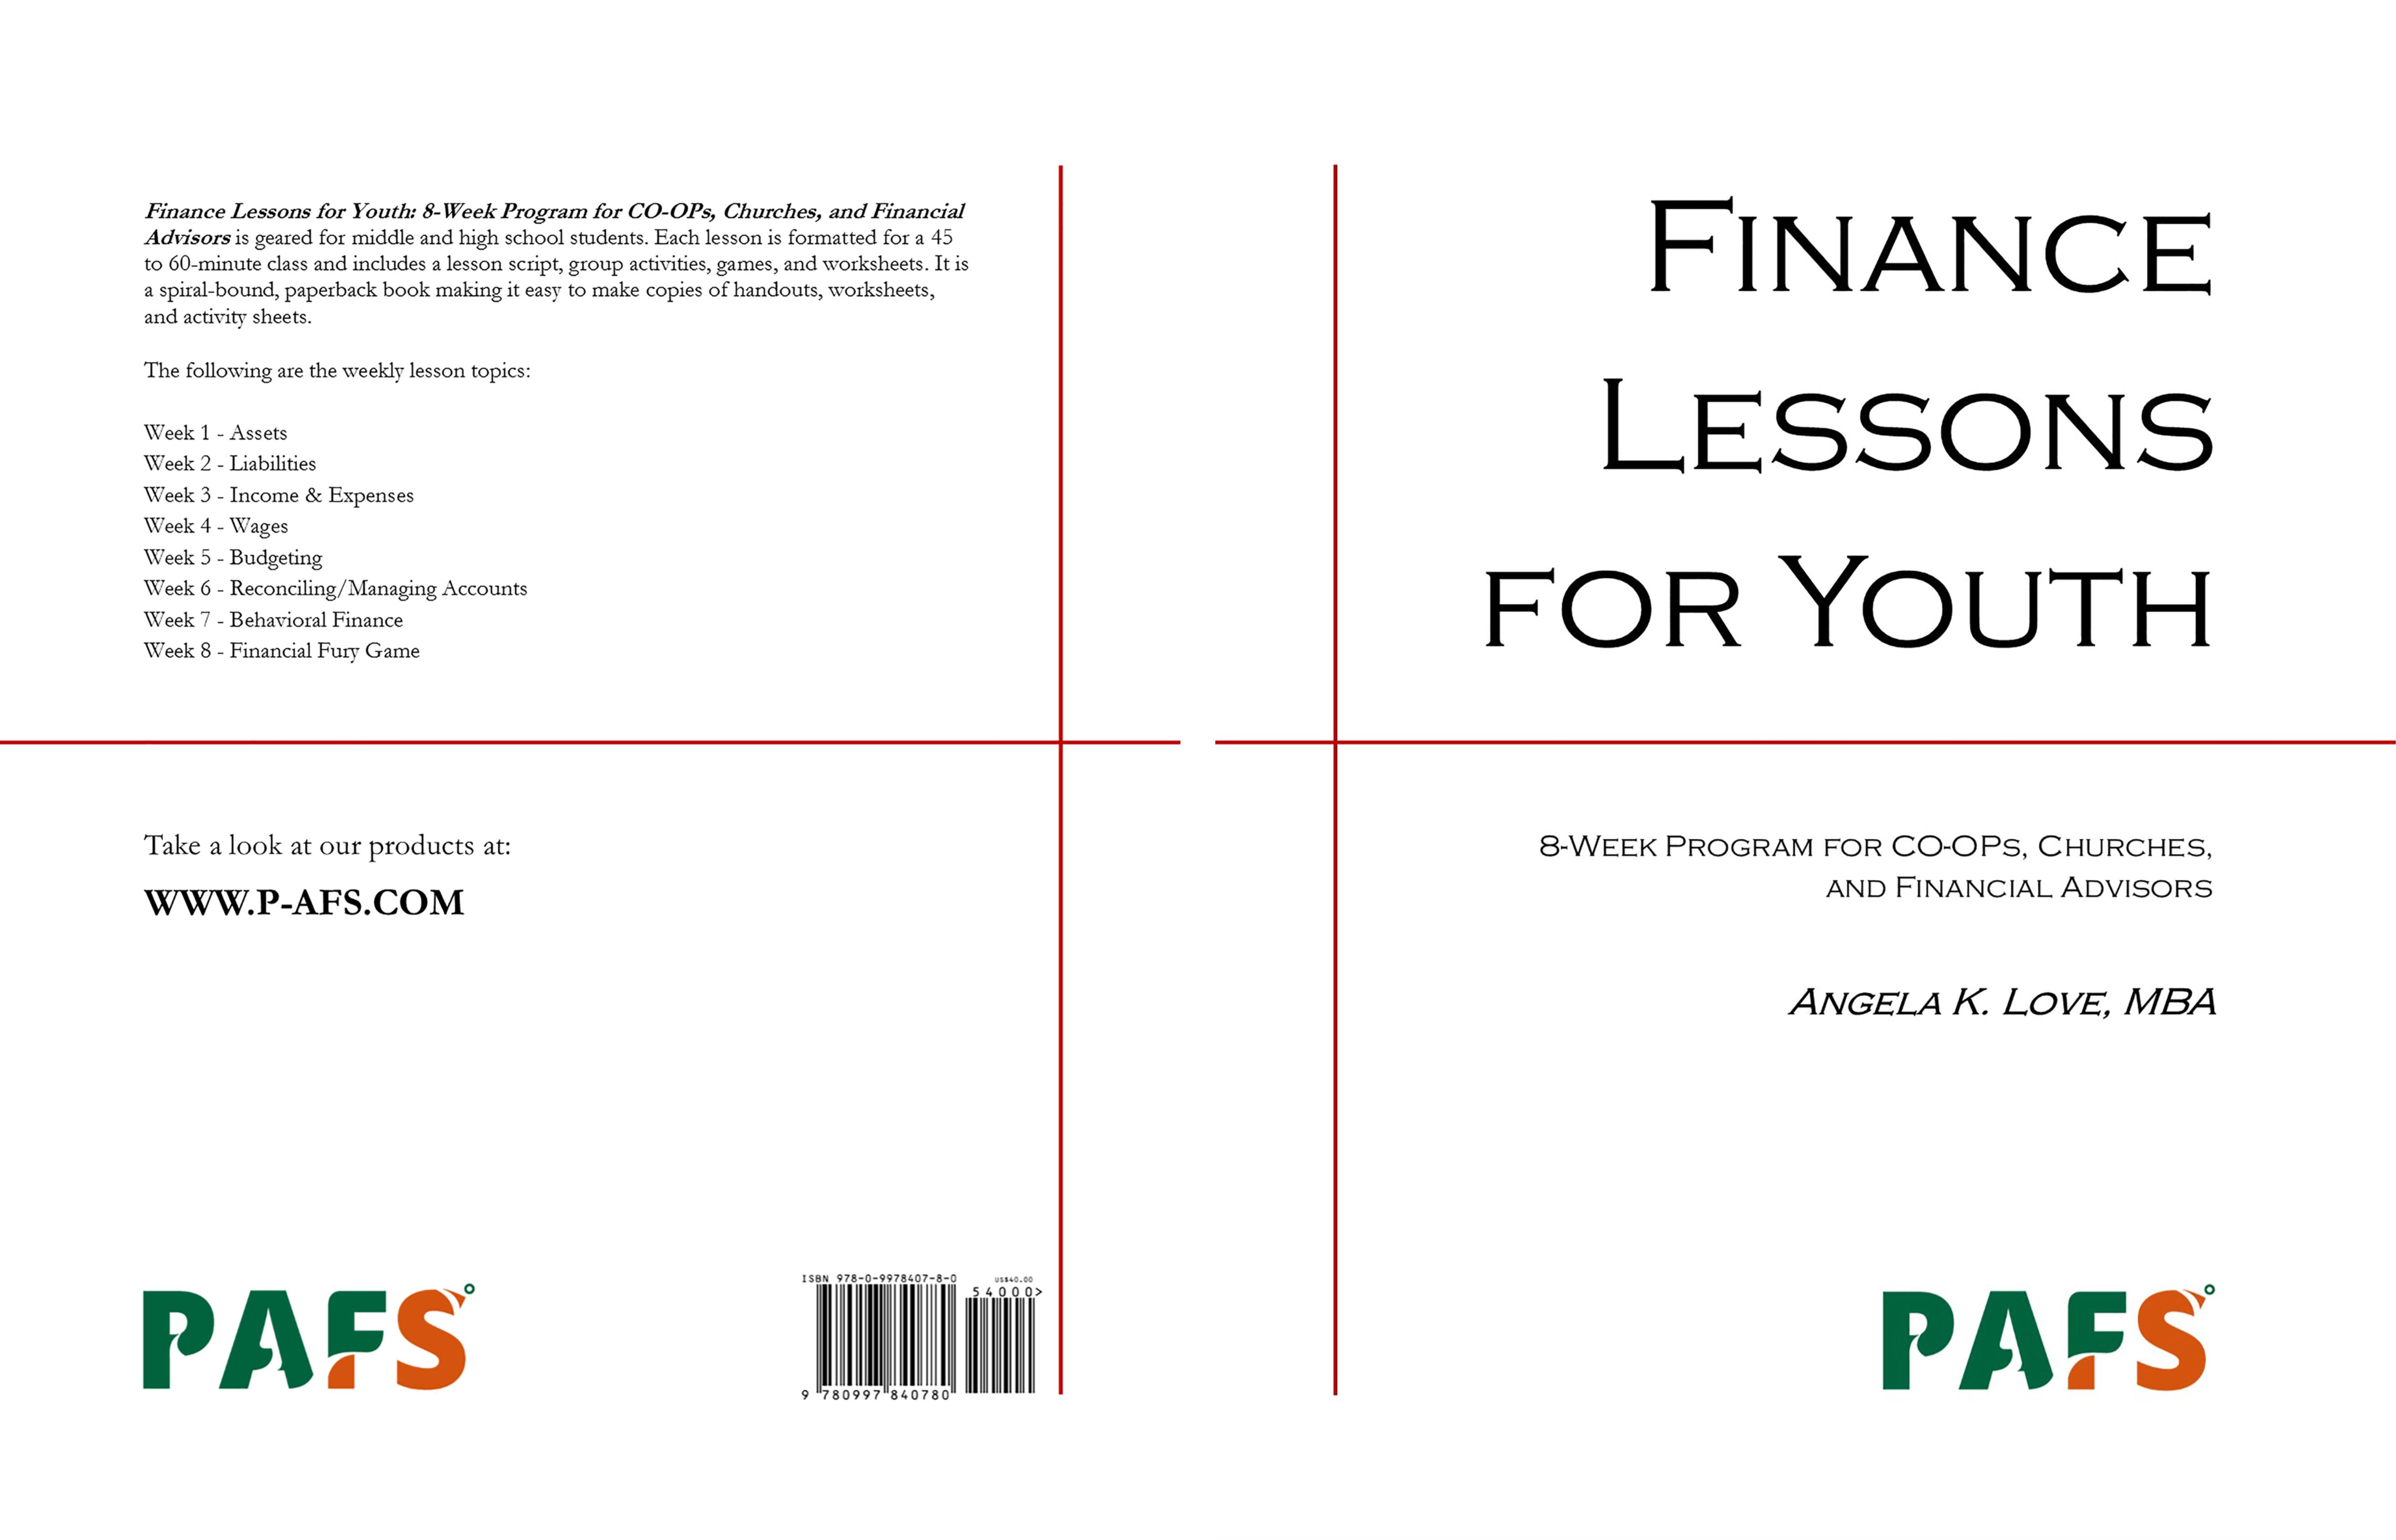 Finance Lessons for Youth by Angela Love $40 00 TheBookPatch